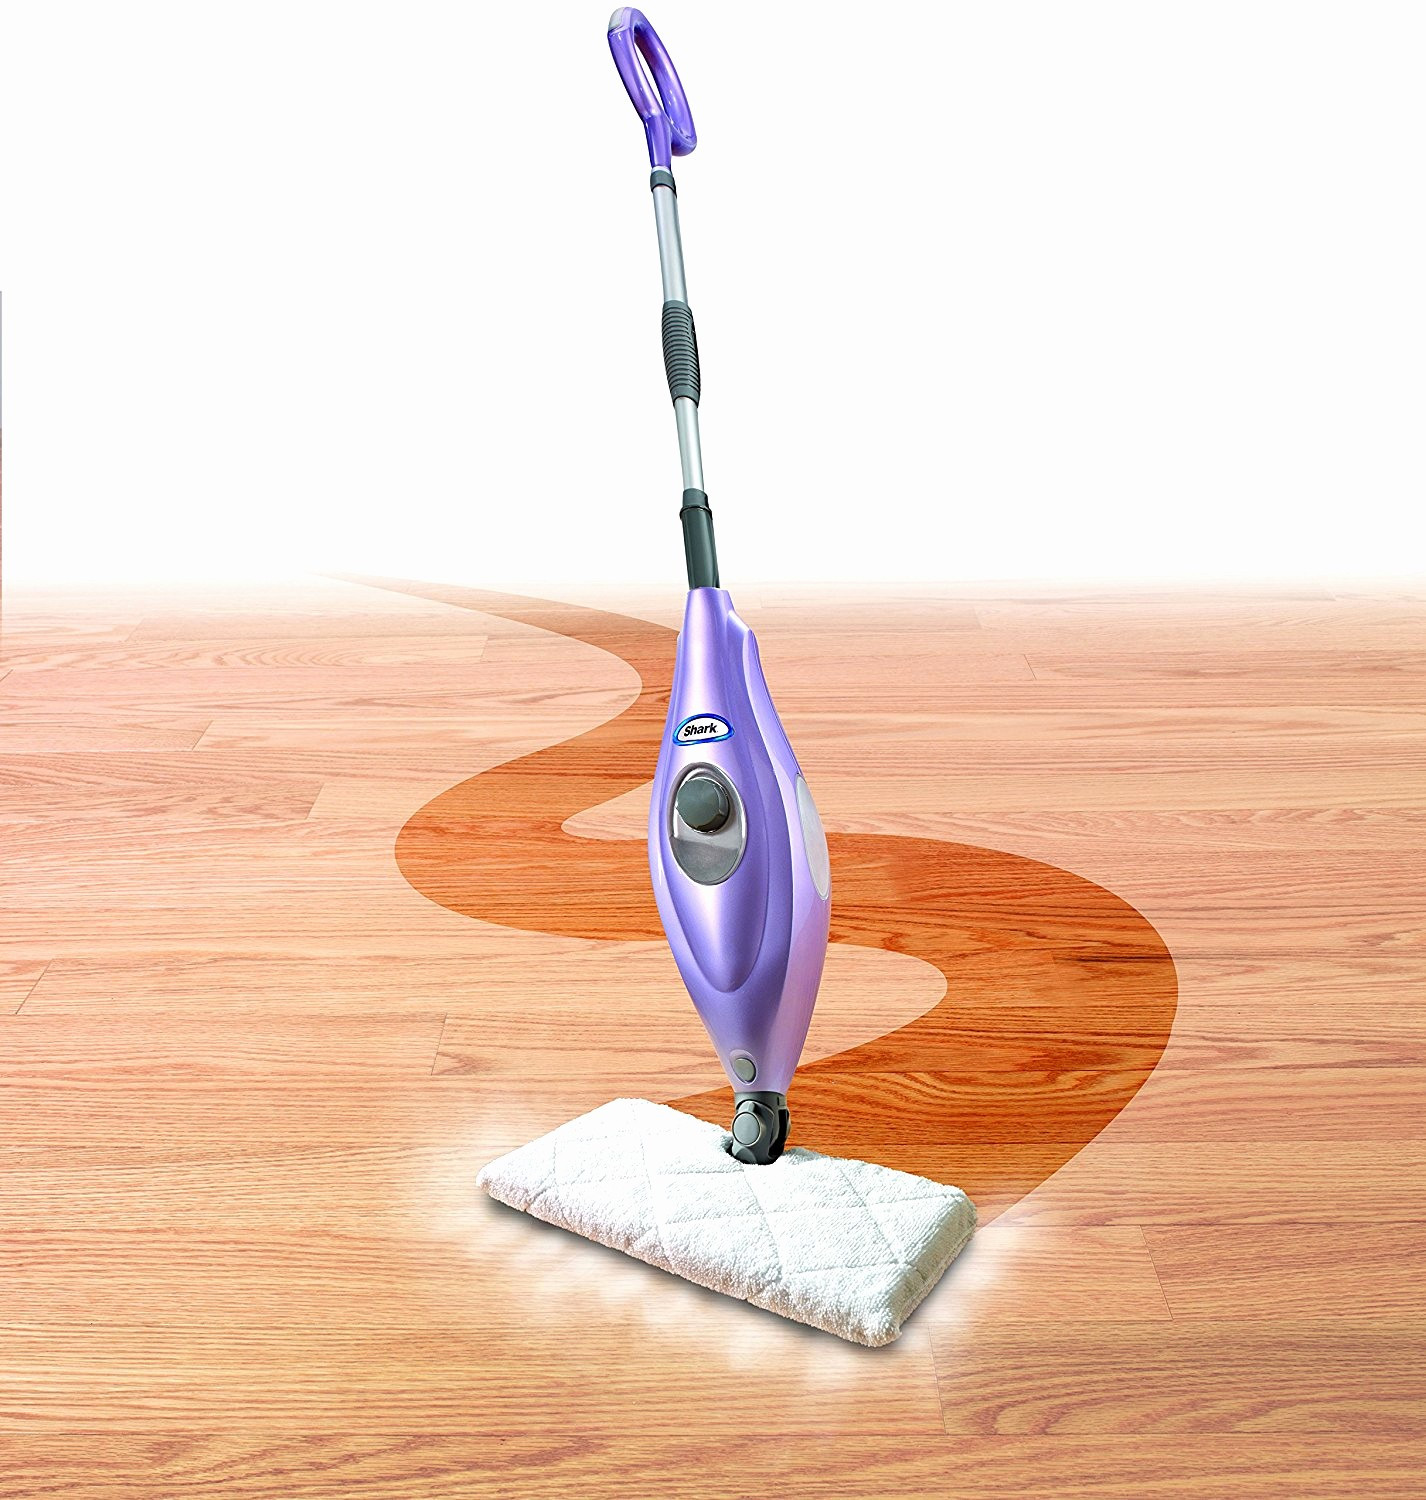 25 Elegant Steam Cleaners For Hardwood Floors Ratings